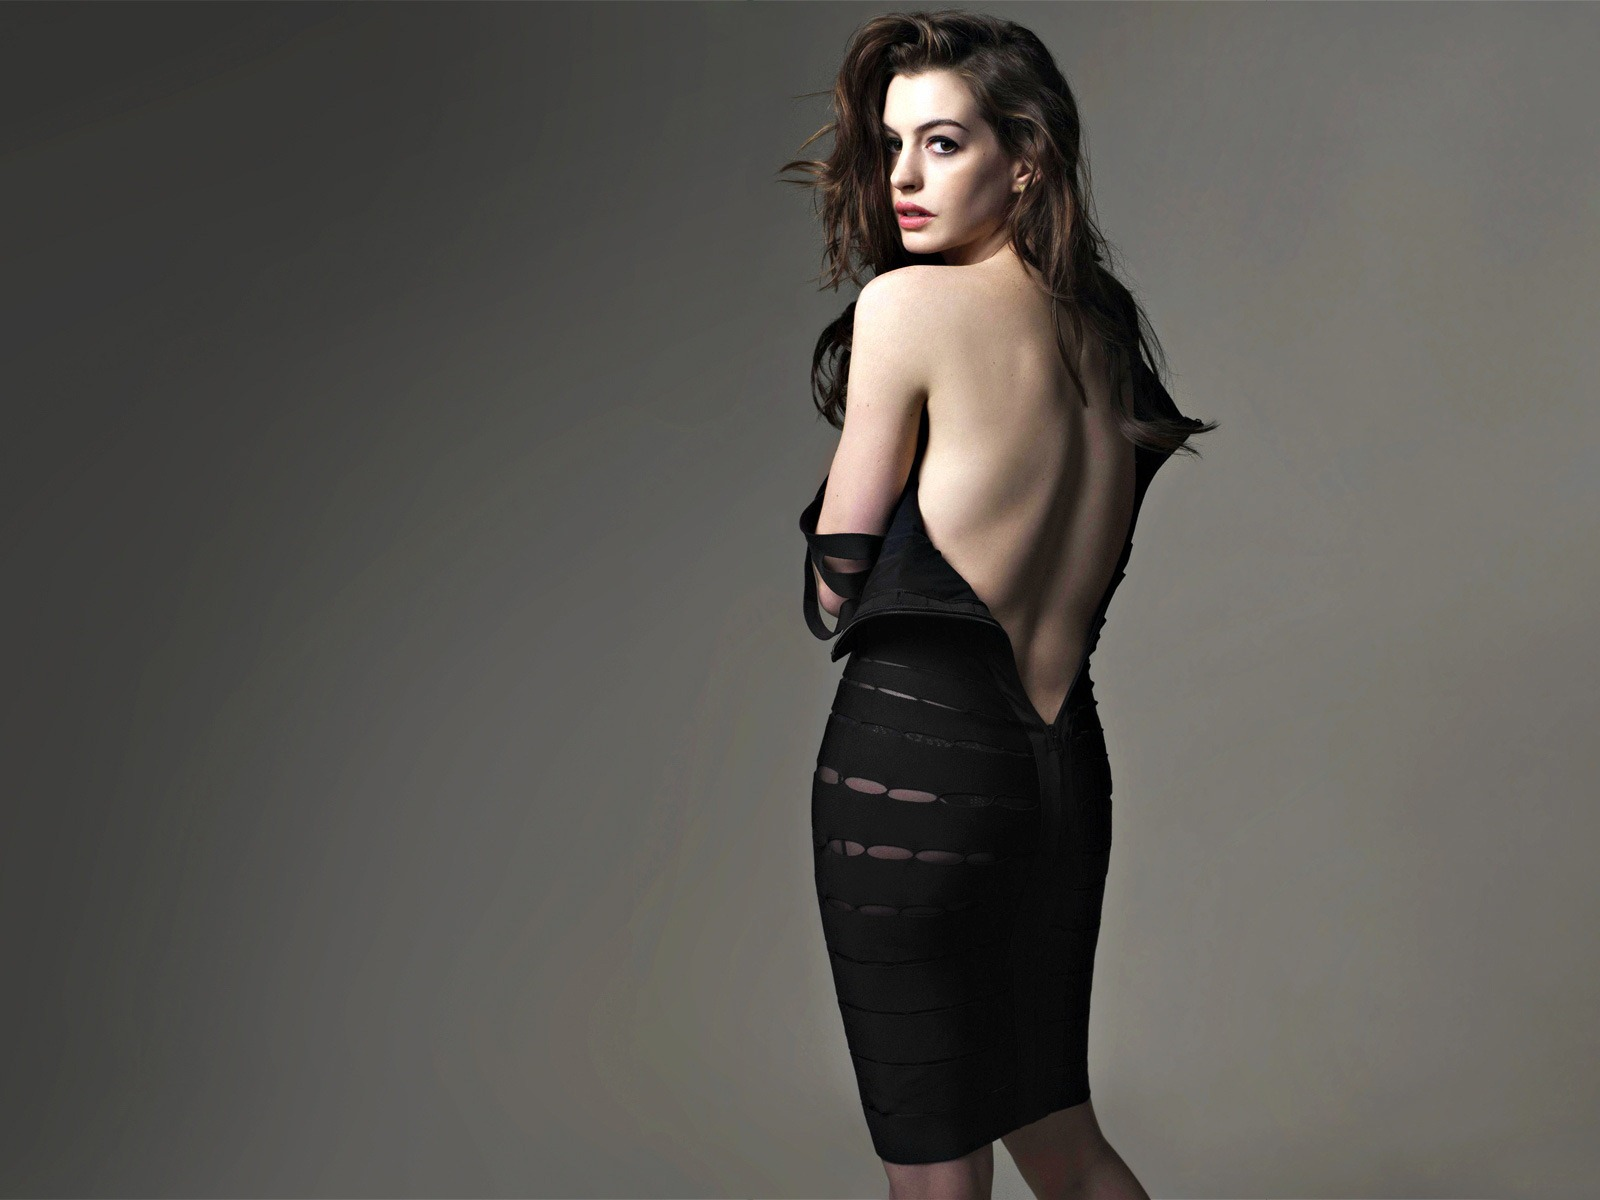 NYBrunettes    Blog Archive    Anne Hathaway Sexy in Black  Anne Hathaway shows just how  vanilla  she is in a sexy photo shoot for